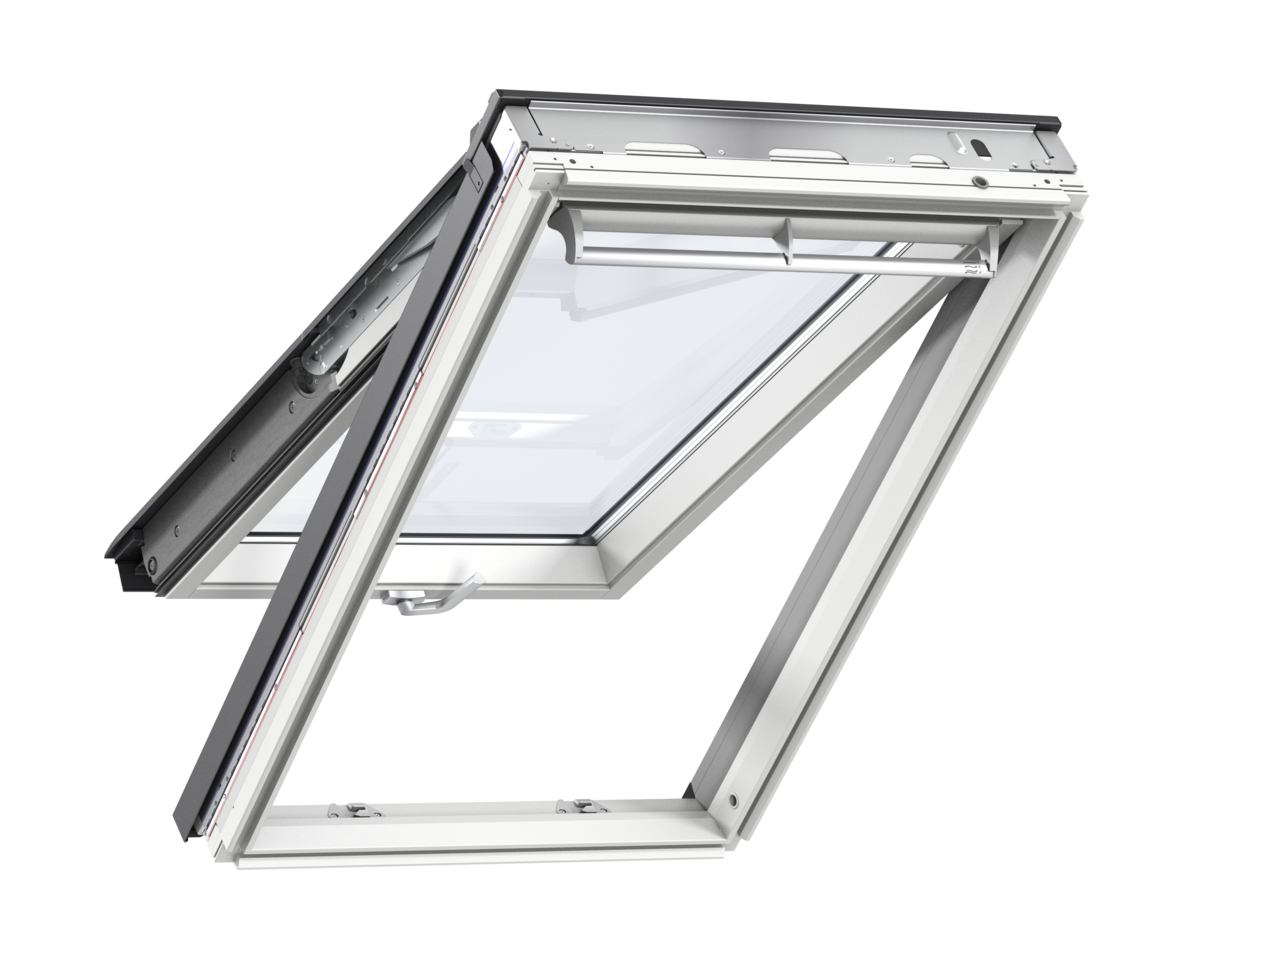 Velux GPL SK06 1140 x 1180mm Top Hung 60Pane Roof Window - White Painted